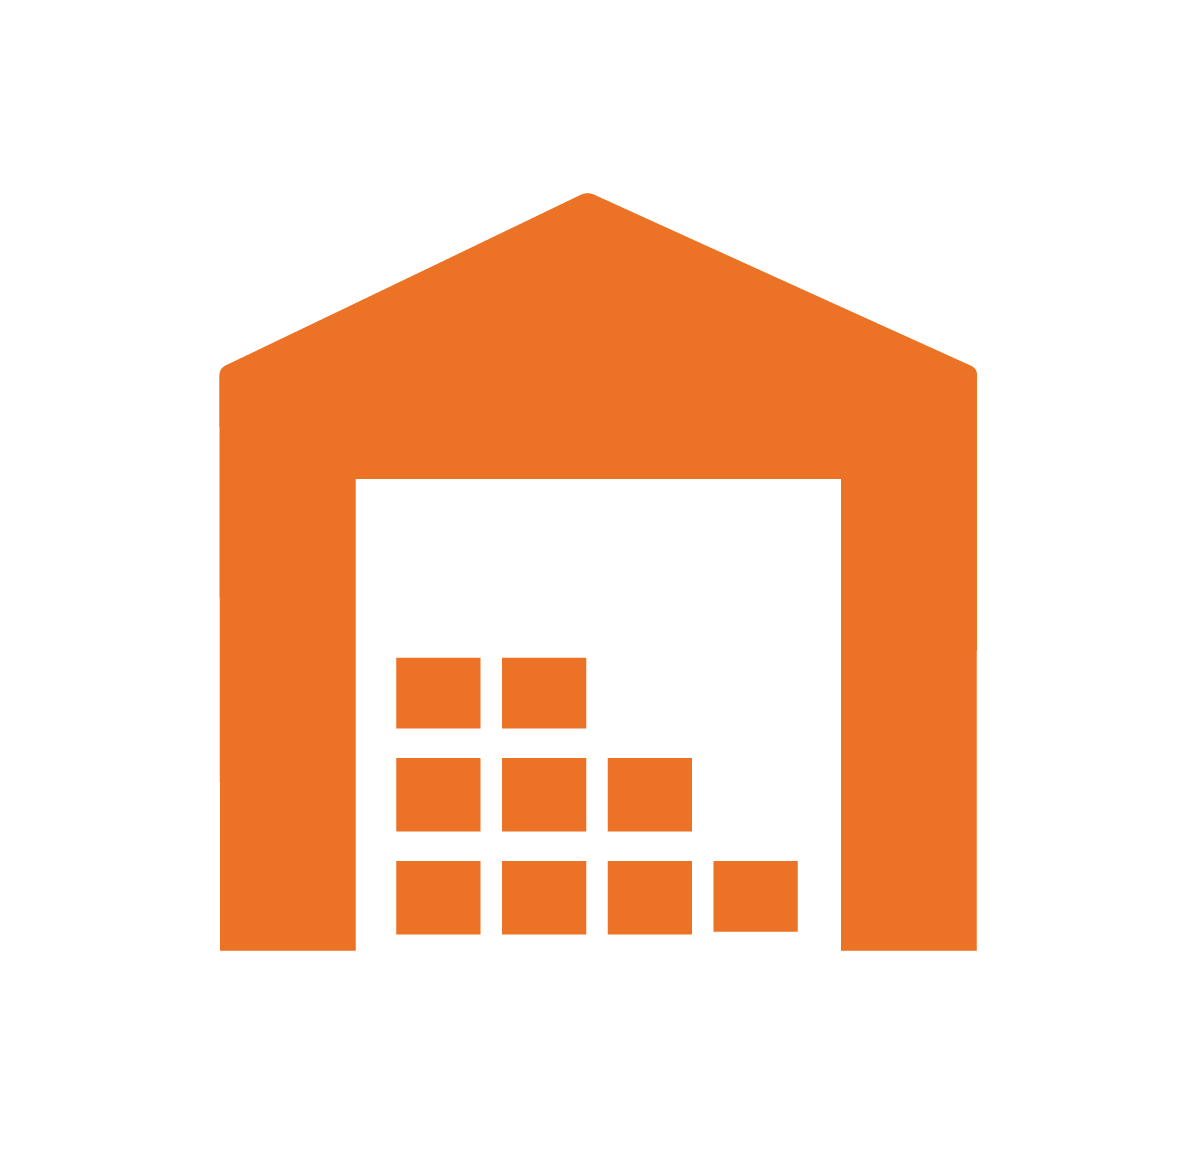 warehouse vector icon